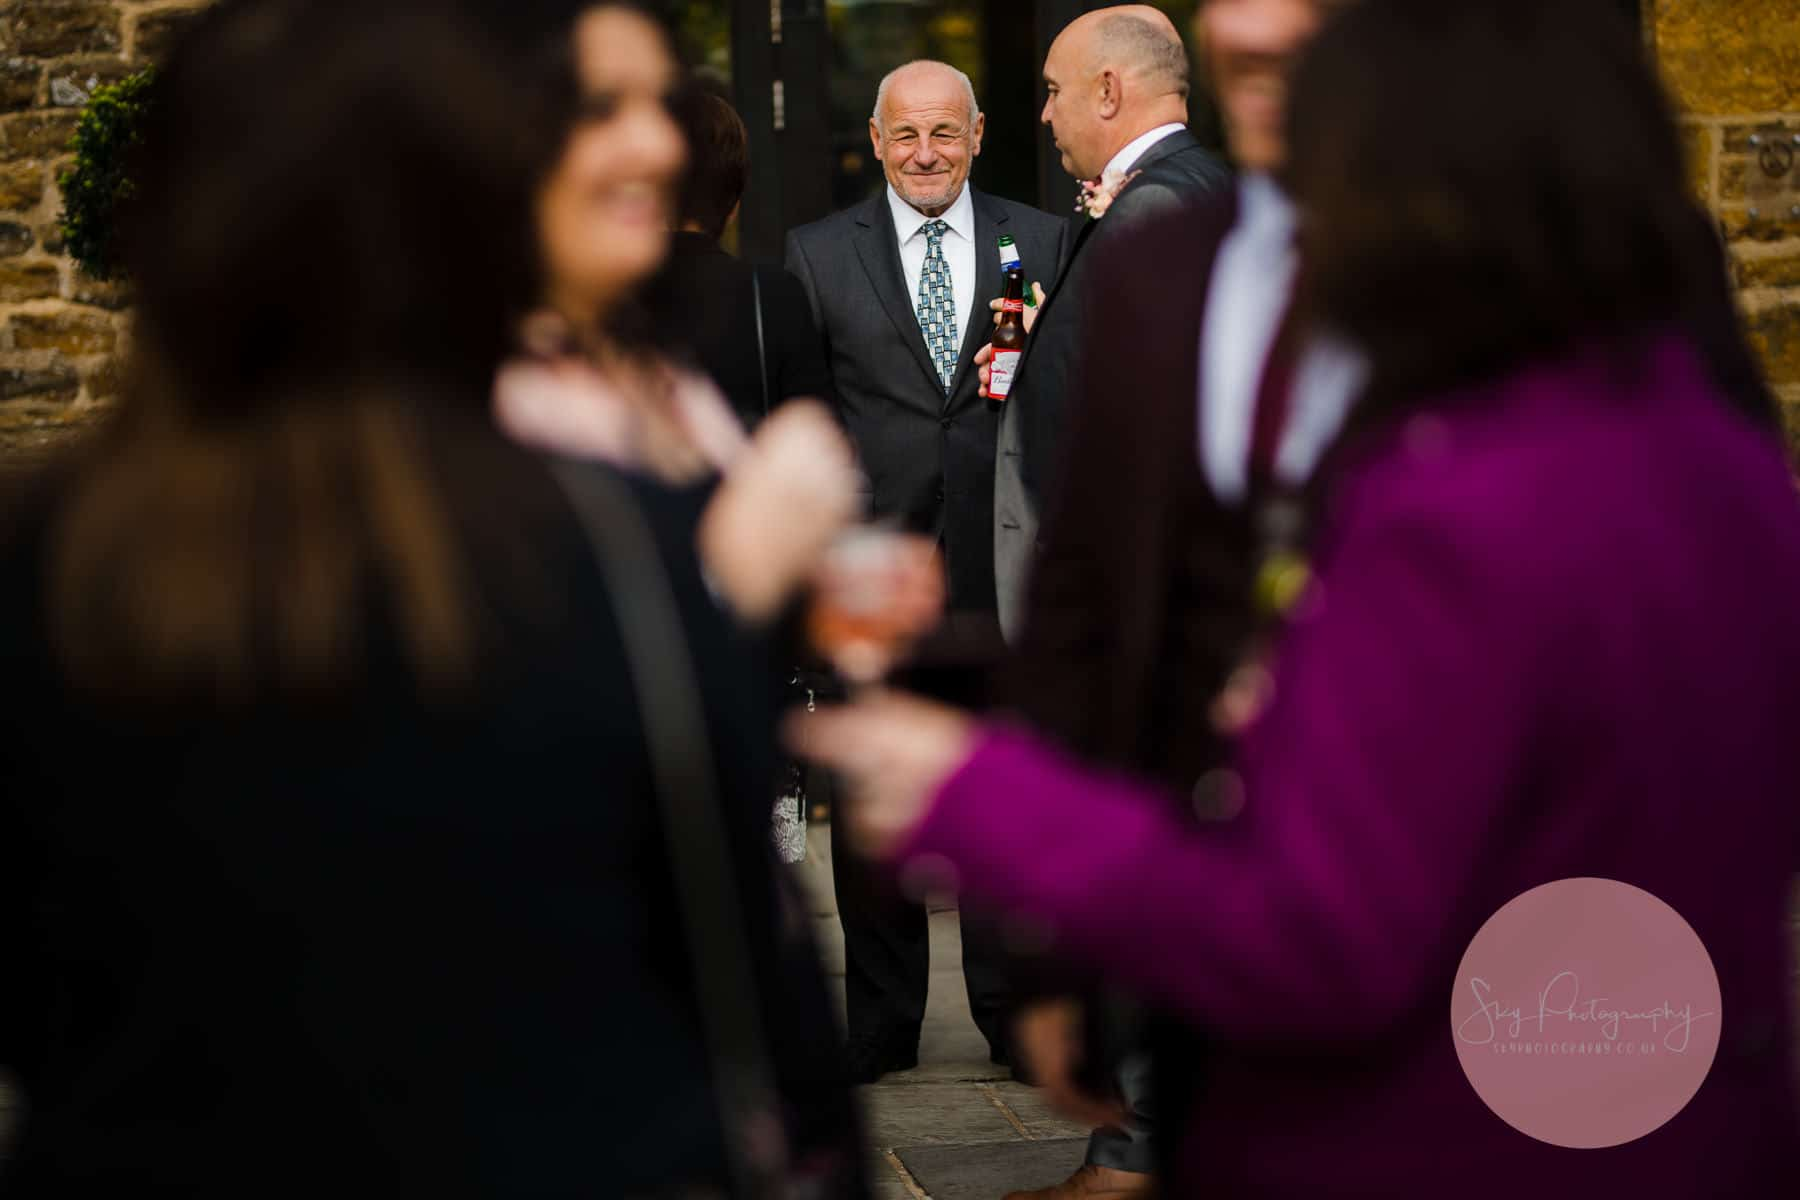 man standing in a crowd at a wedding reception